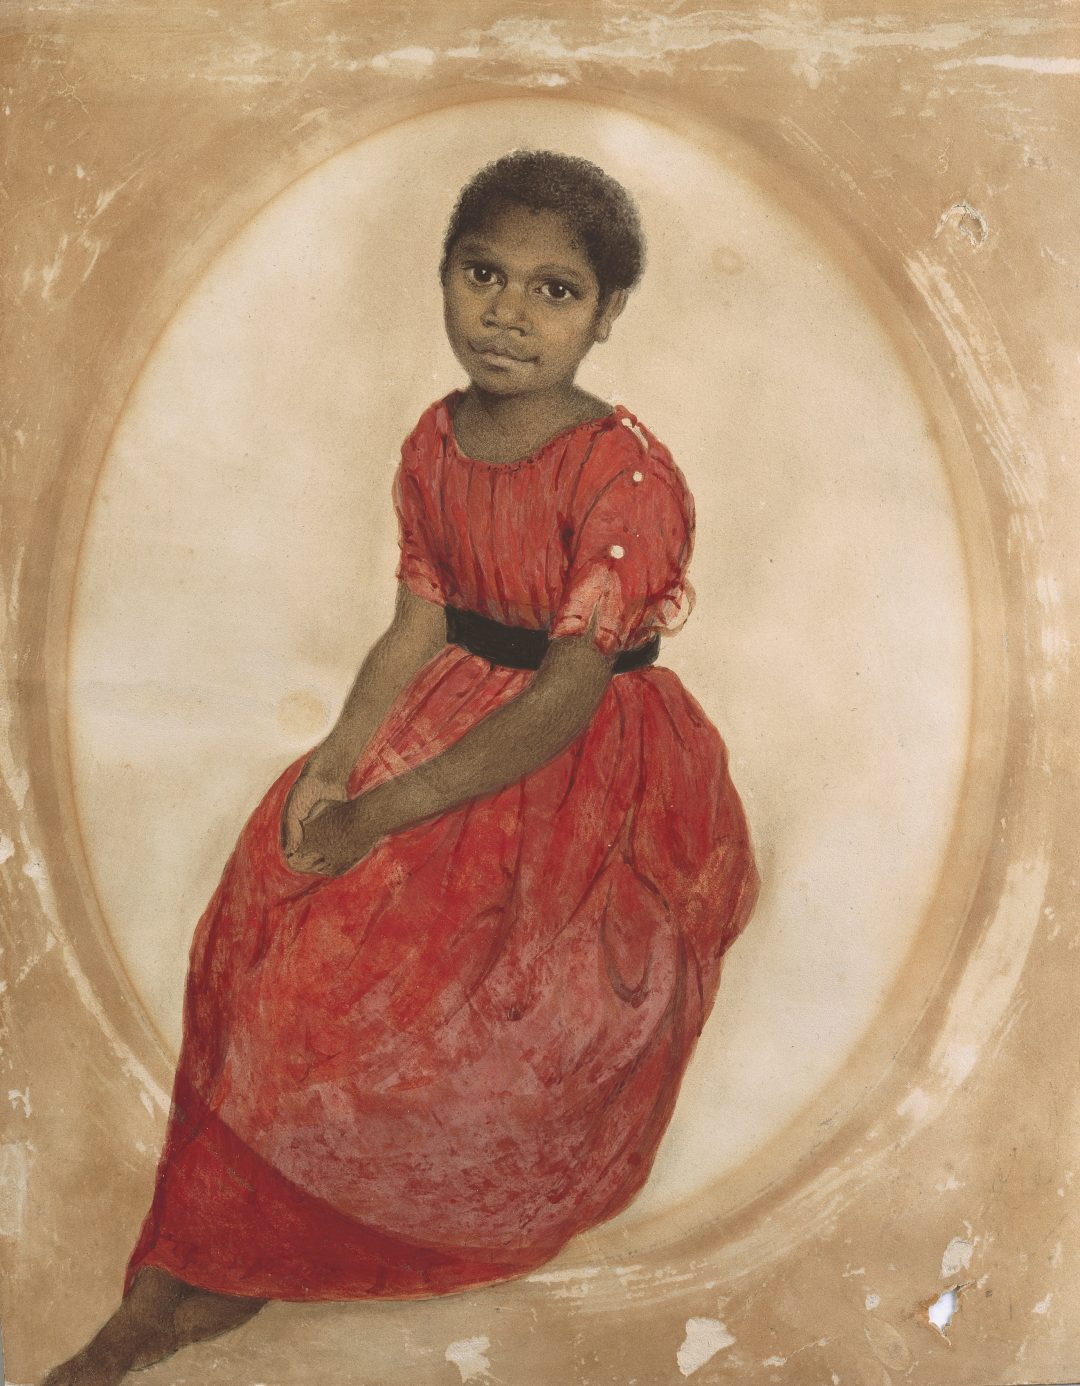 Thomas Bock, Mathinna, 1842, Watercolour. Collection Tasmanian Museum and Art Gallery, presented by J H Clark, 1951 AG290